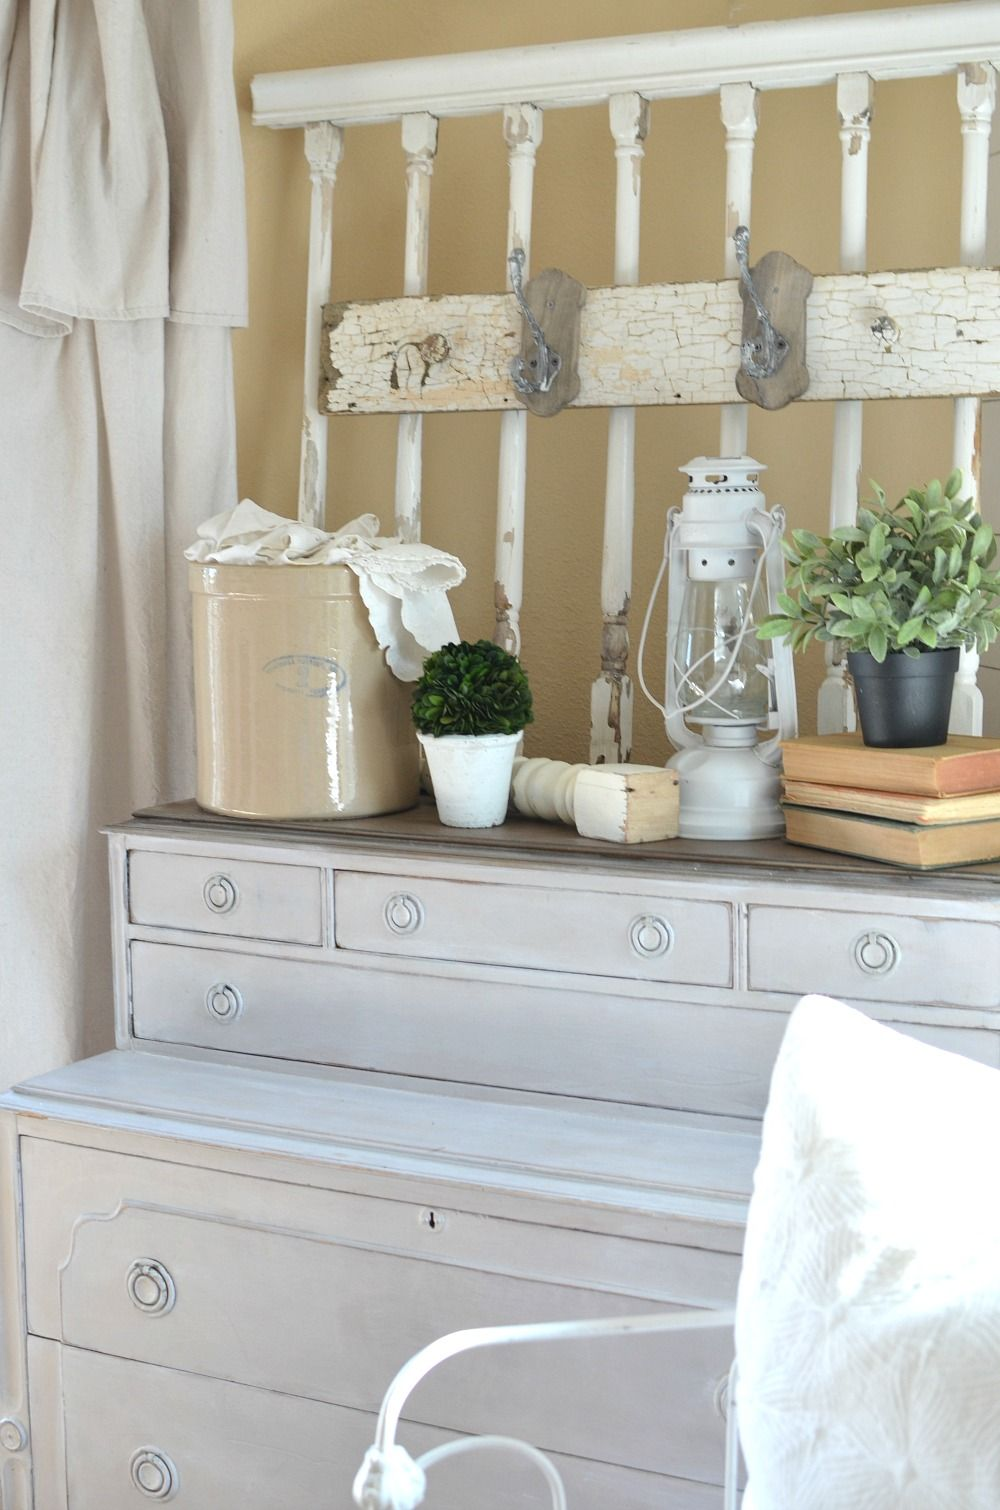 How to Get Organized with Vintage Decor | Vintage decor, Organizing ...